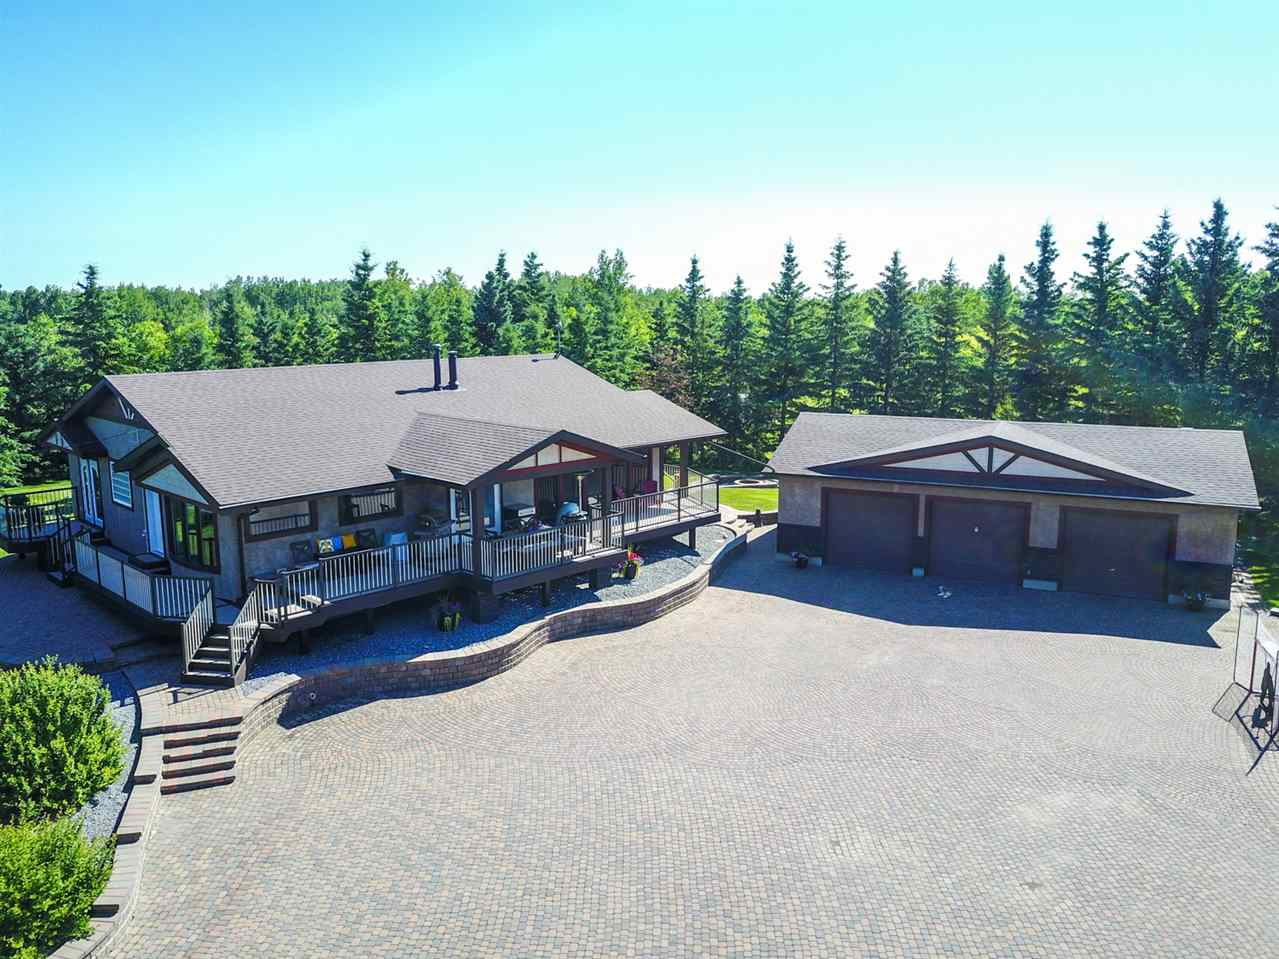 Main Photo: 25 1030 TWP 544: Rural Sturgeon County House for sale : MLS(r) # E4071734